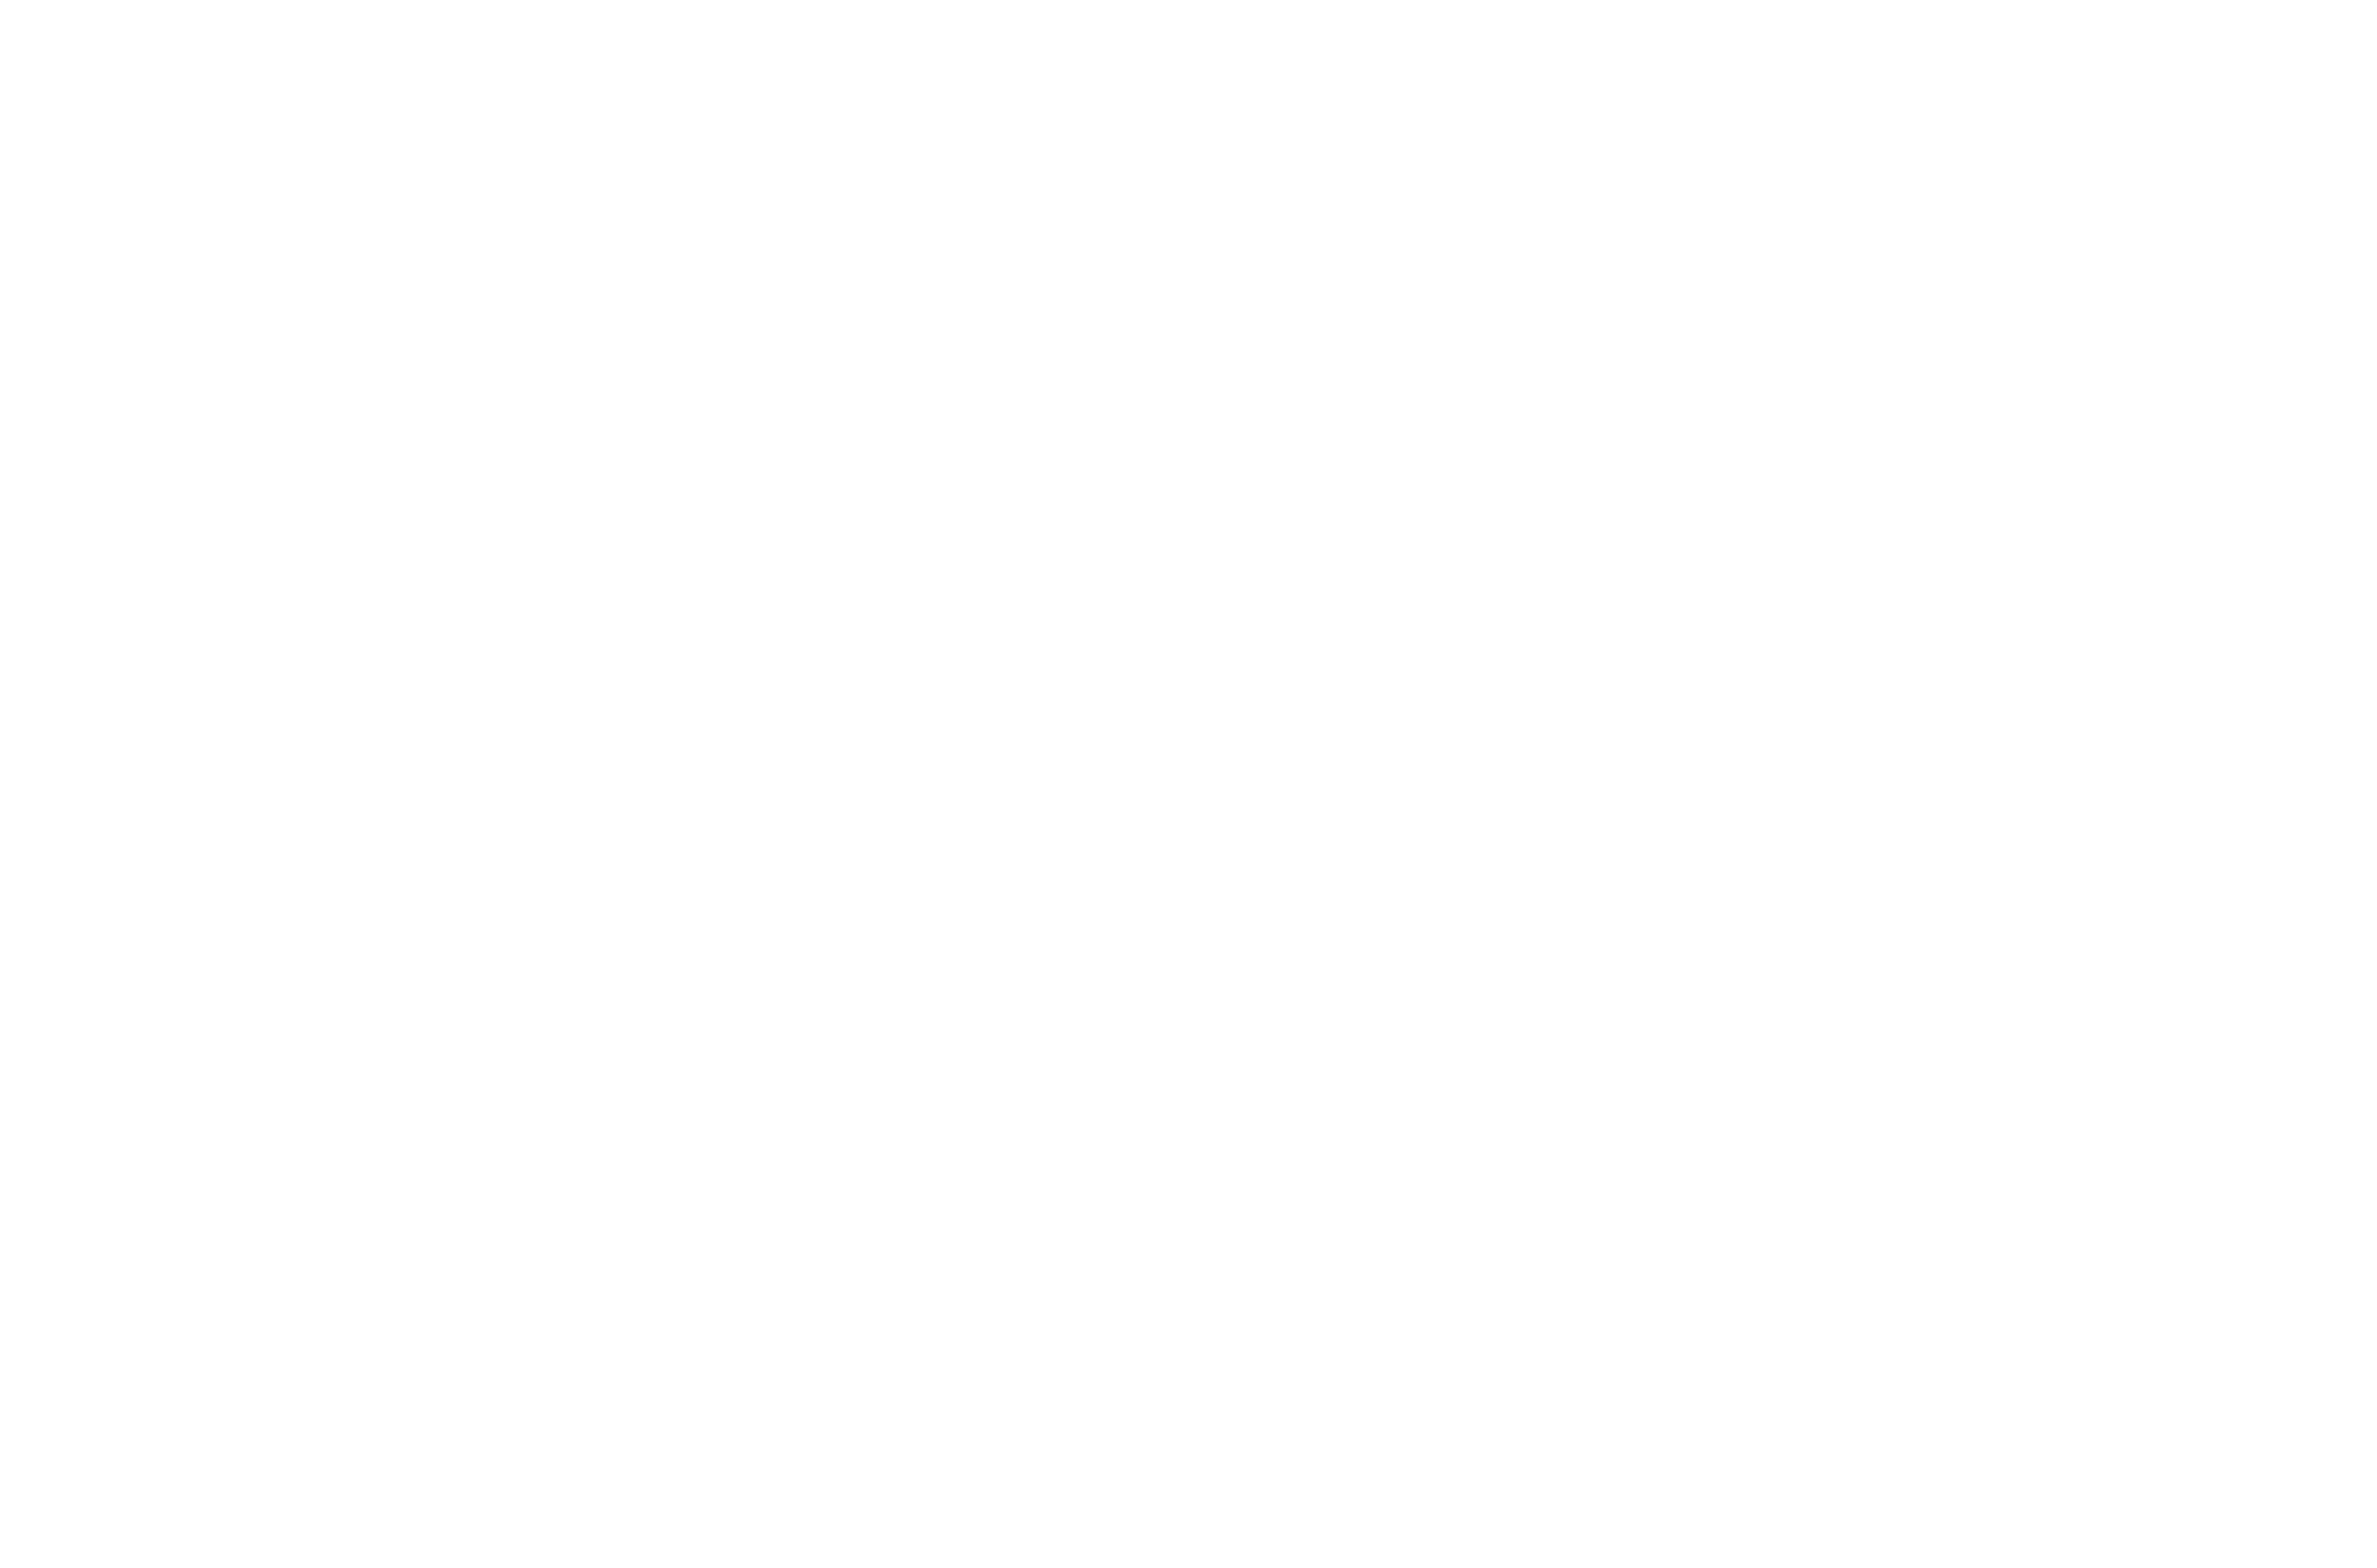 GIFFx-Official-Selection-Transparent negative.png